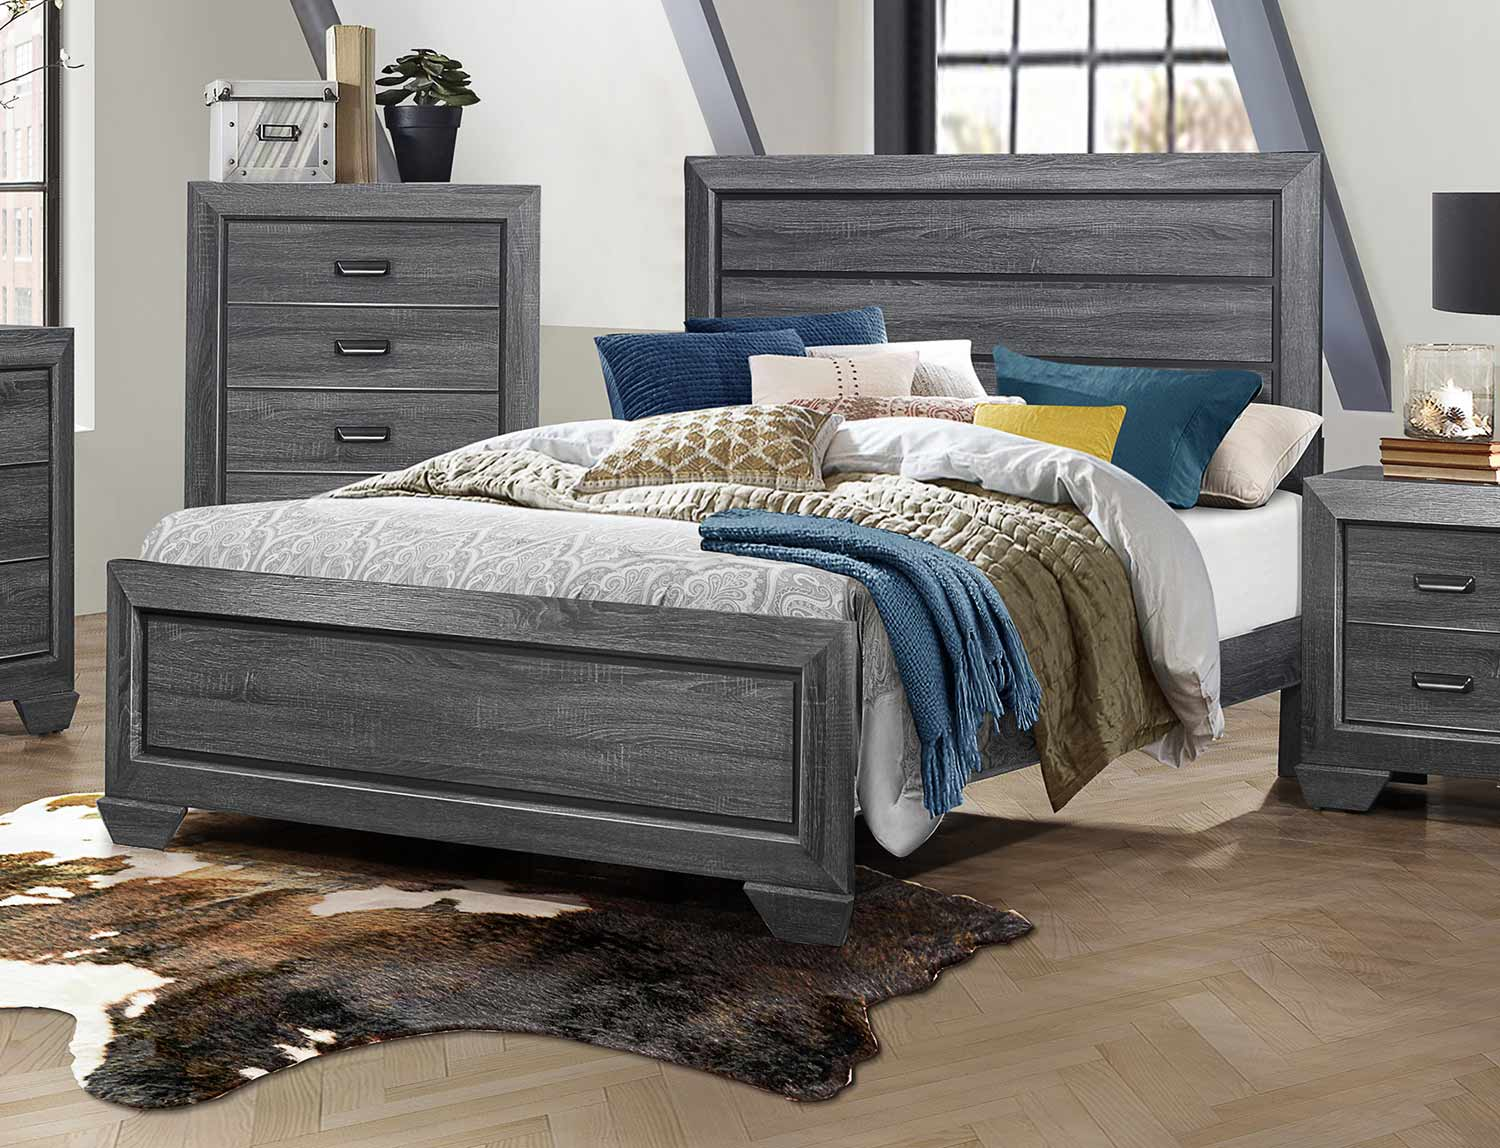 Homelegance Beechnut Bed - Gray